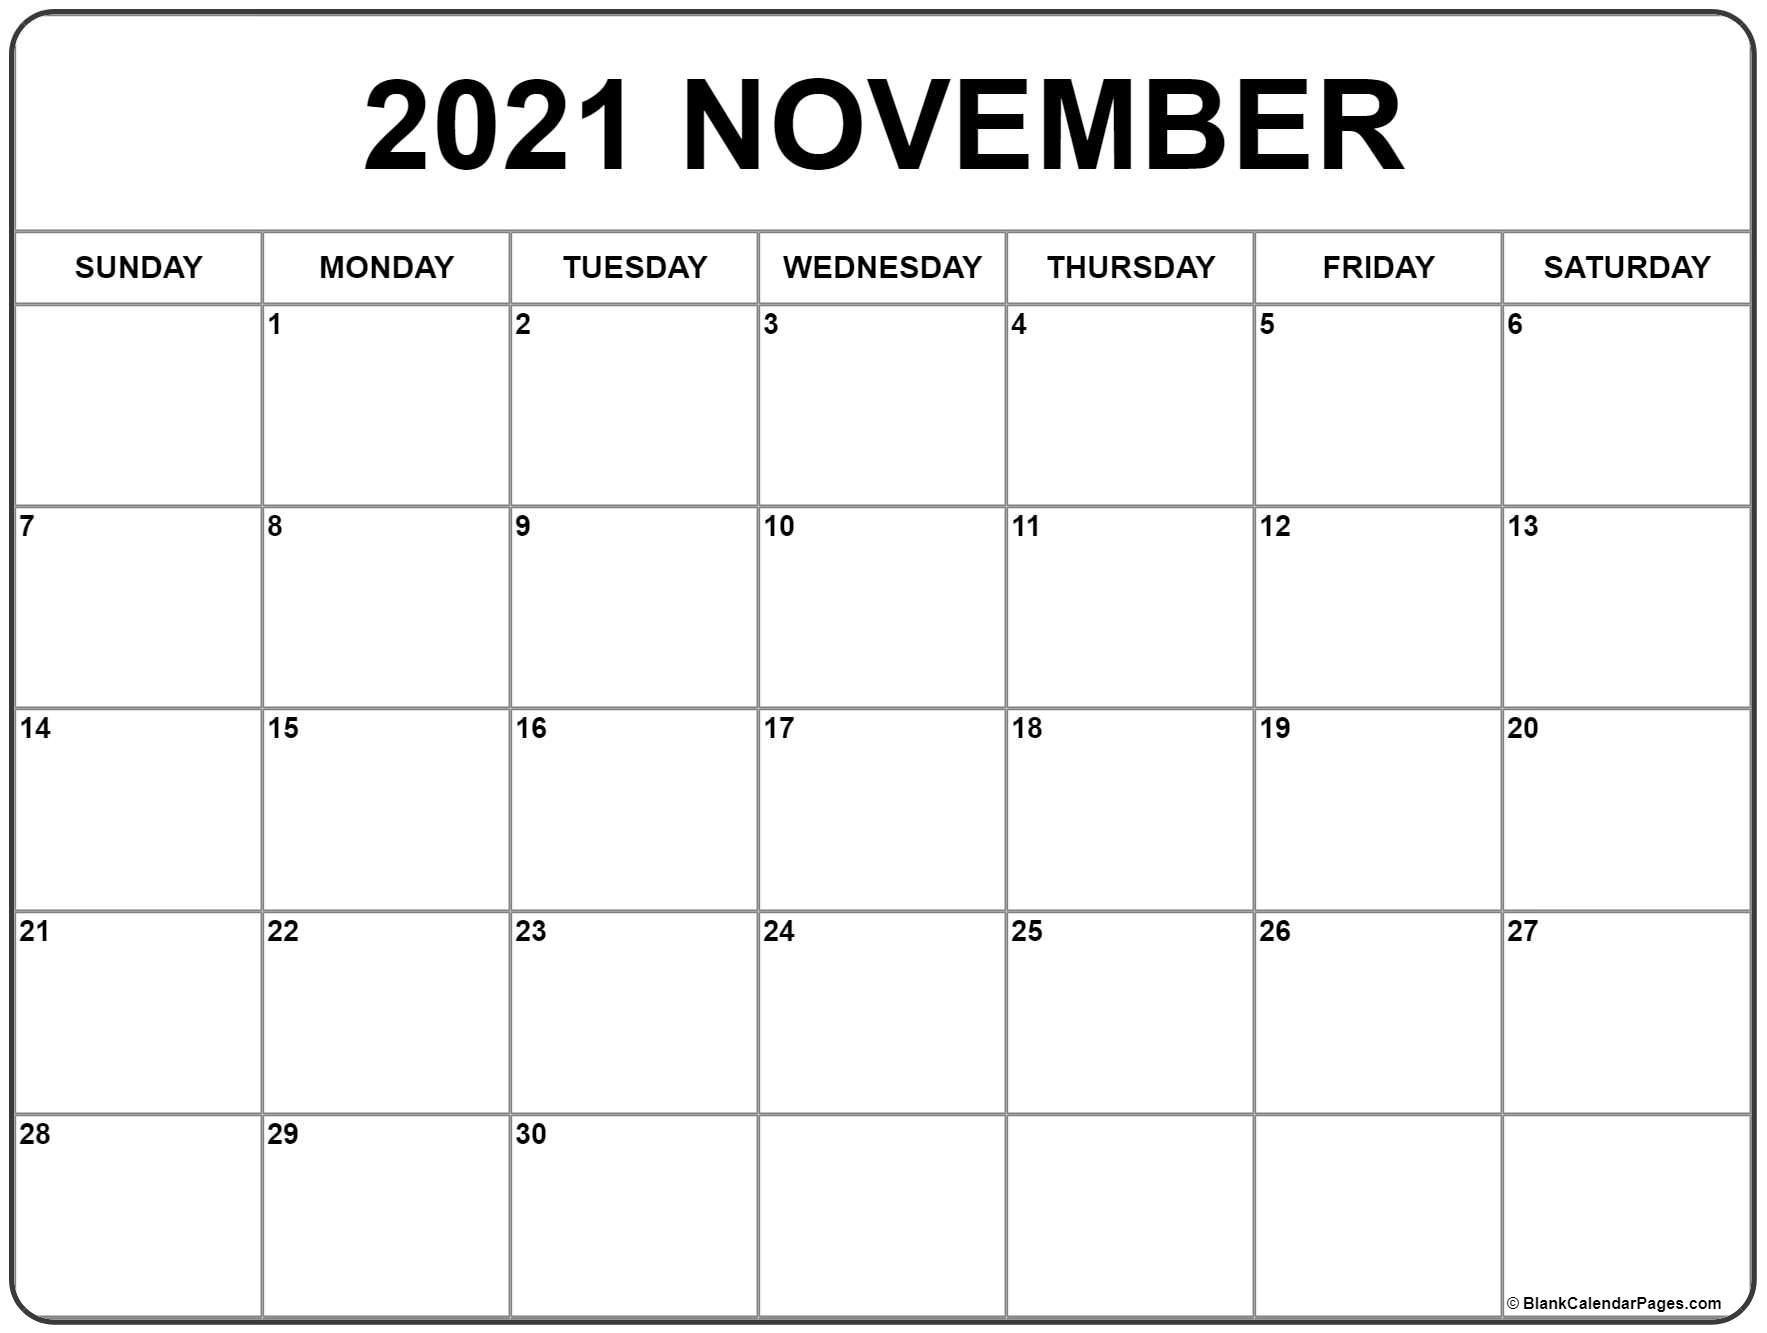 November Calendar 2021 November 2021 calendar | free printable monthly calendars